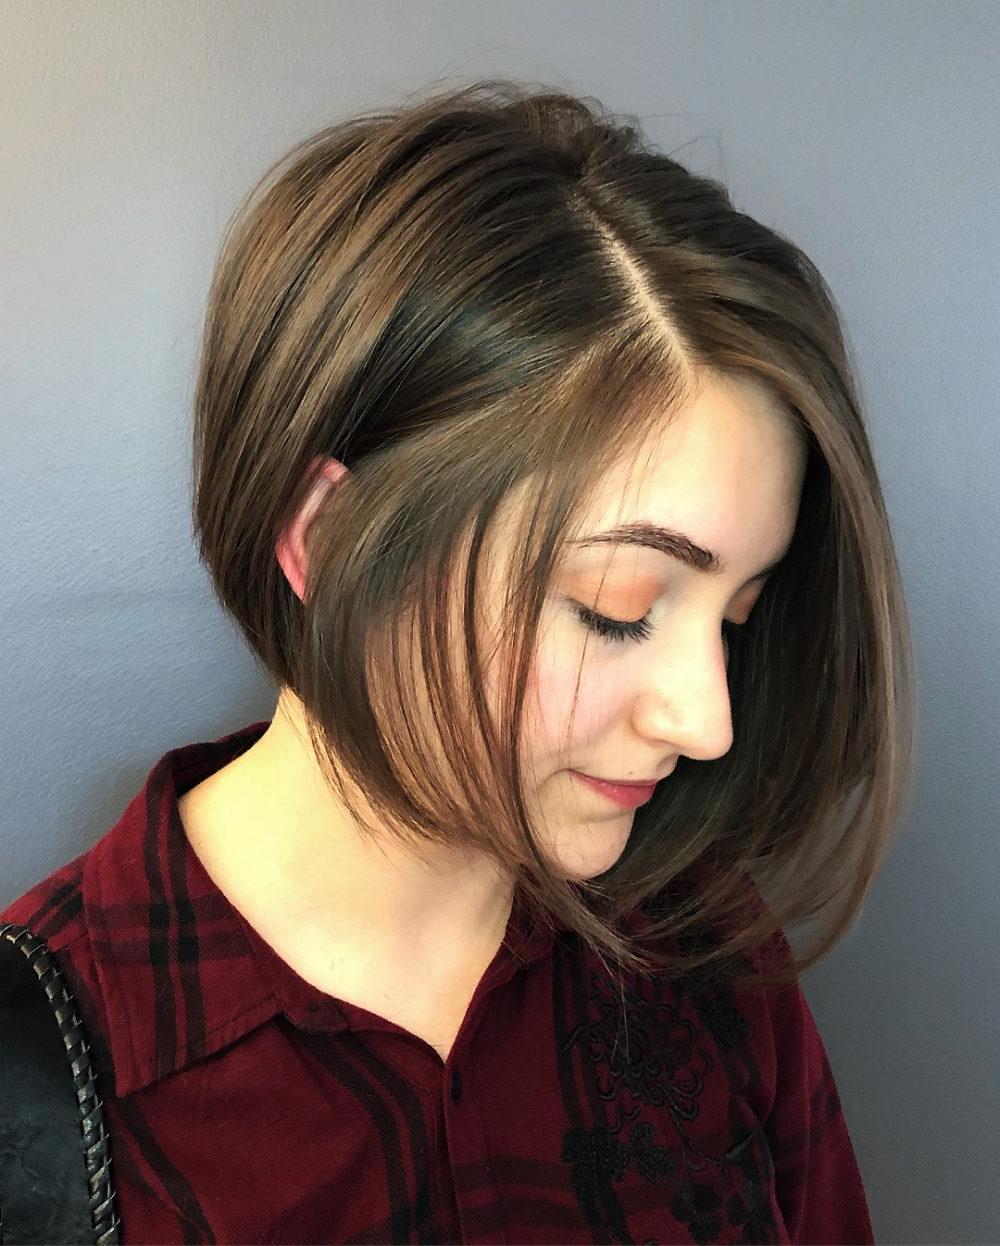 33 Flattering Short Hairstyles For Round Faces In 2018 For Trendy Short Haircuts For Round Faces (View 4 of 25)